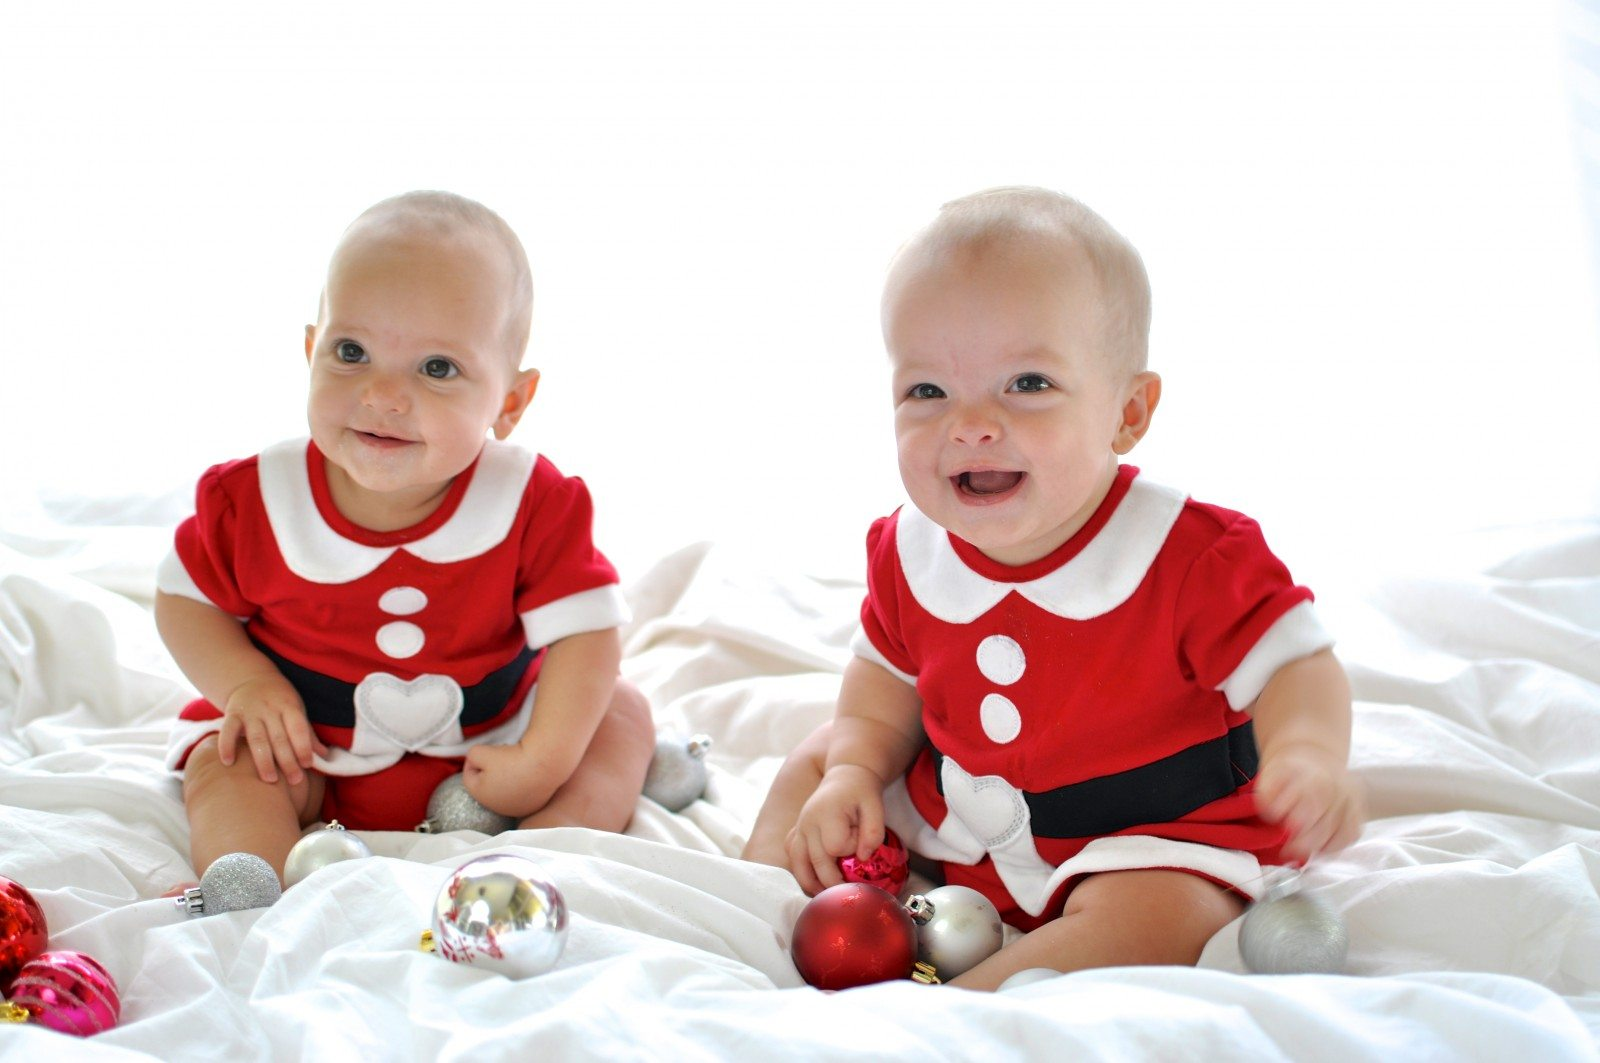 Santa's gorgeous little helpers